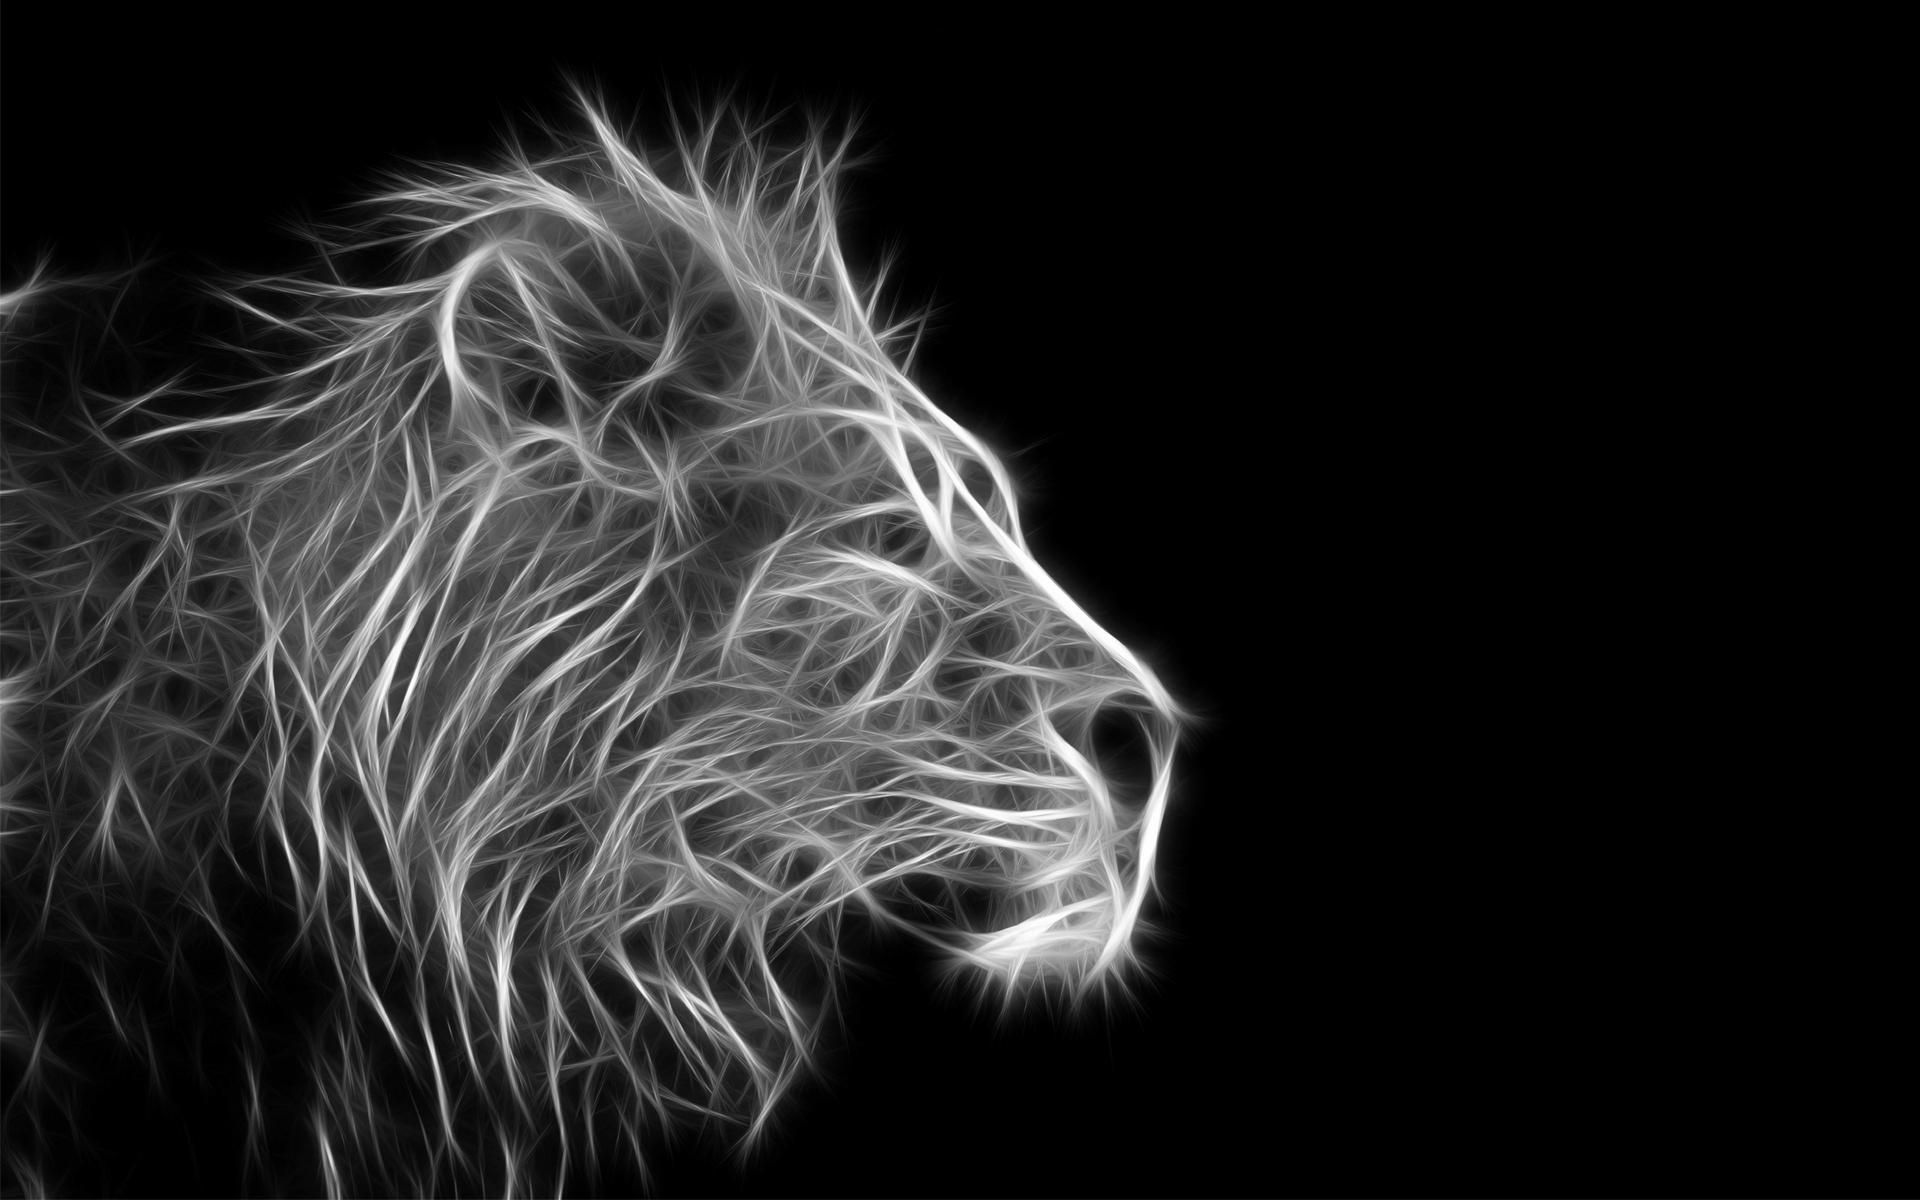 Great Lion Wallpaper For Your Iphone Xr From Everpix Lion Hd Wallpaper Lion Wallpaper Lion Wallpaper Iphone